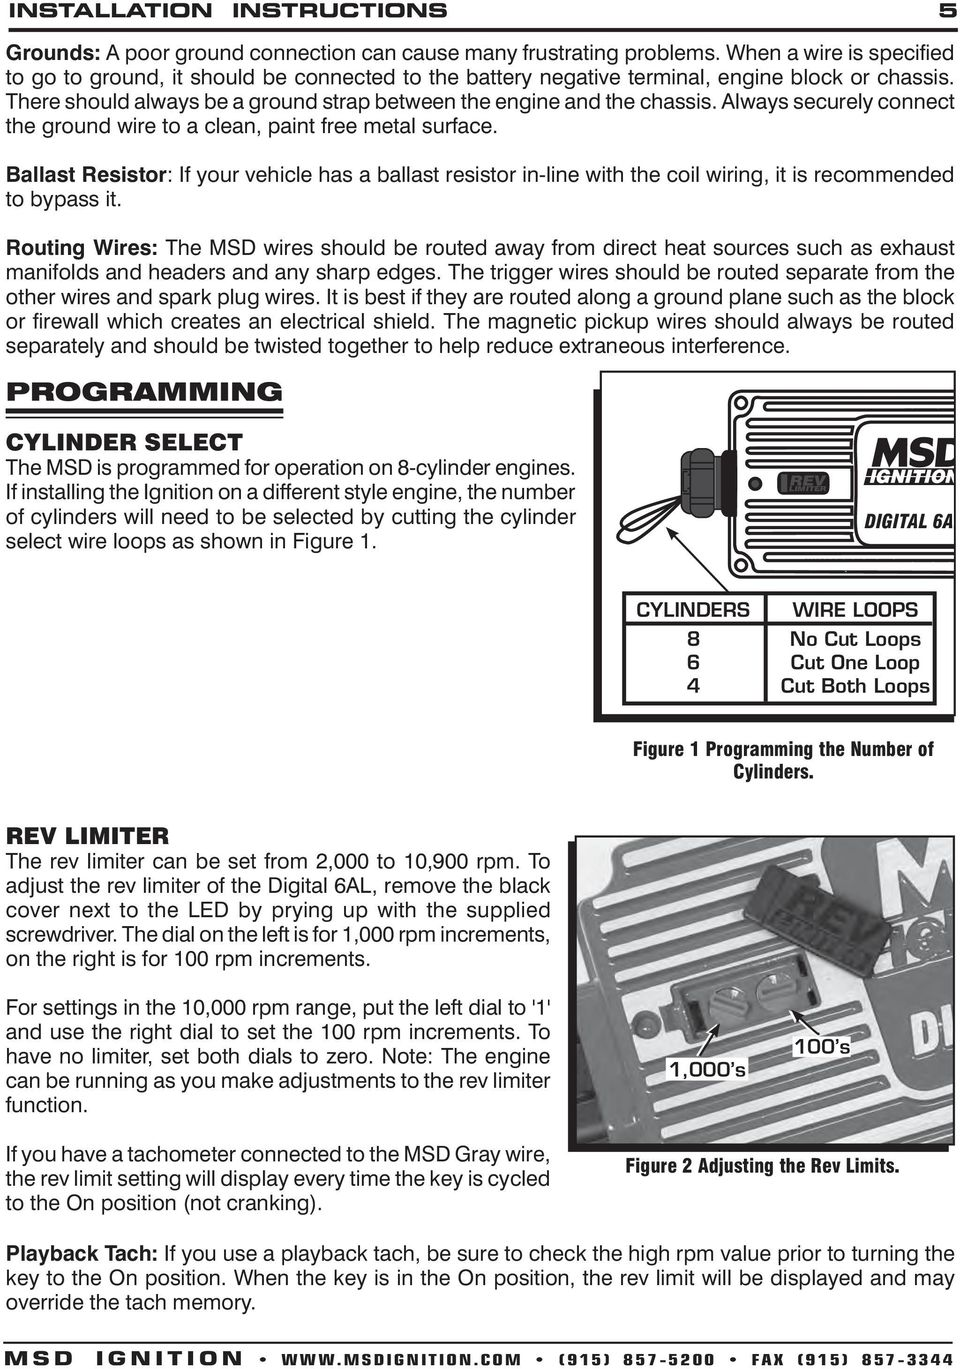 Msd Digital 6a And 6al Ignition Control Pn 6201 Pdf Shift Light Wiring Diagram Always Securely Connect The Ground Wire To A Clean Paint Free Metal Surface Ballast